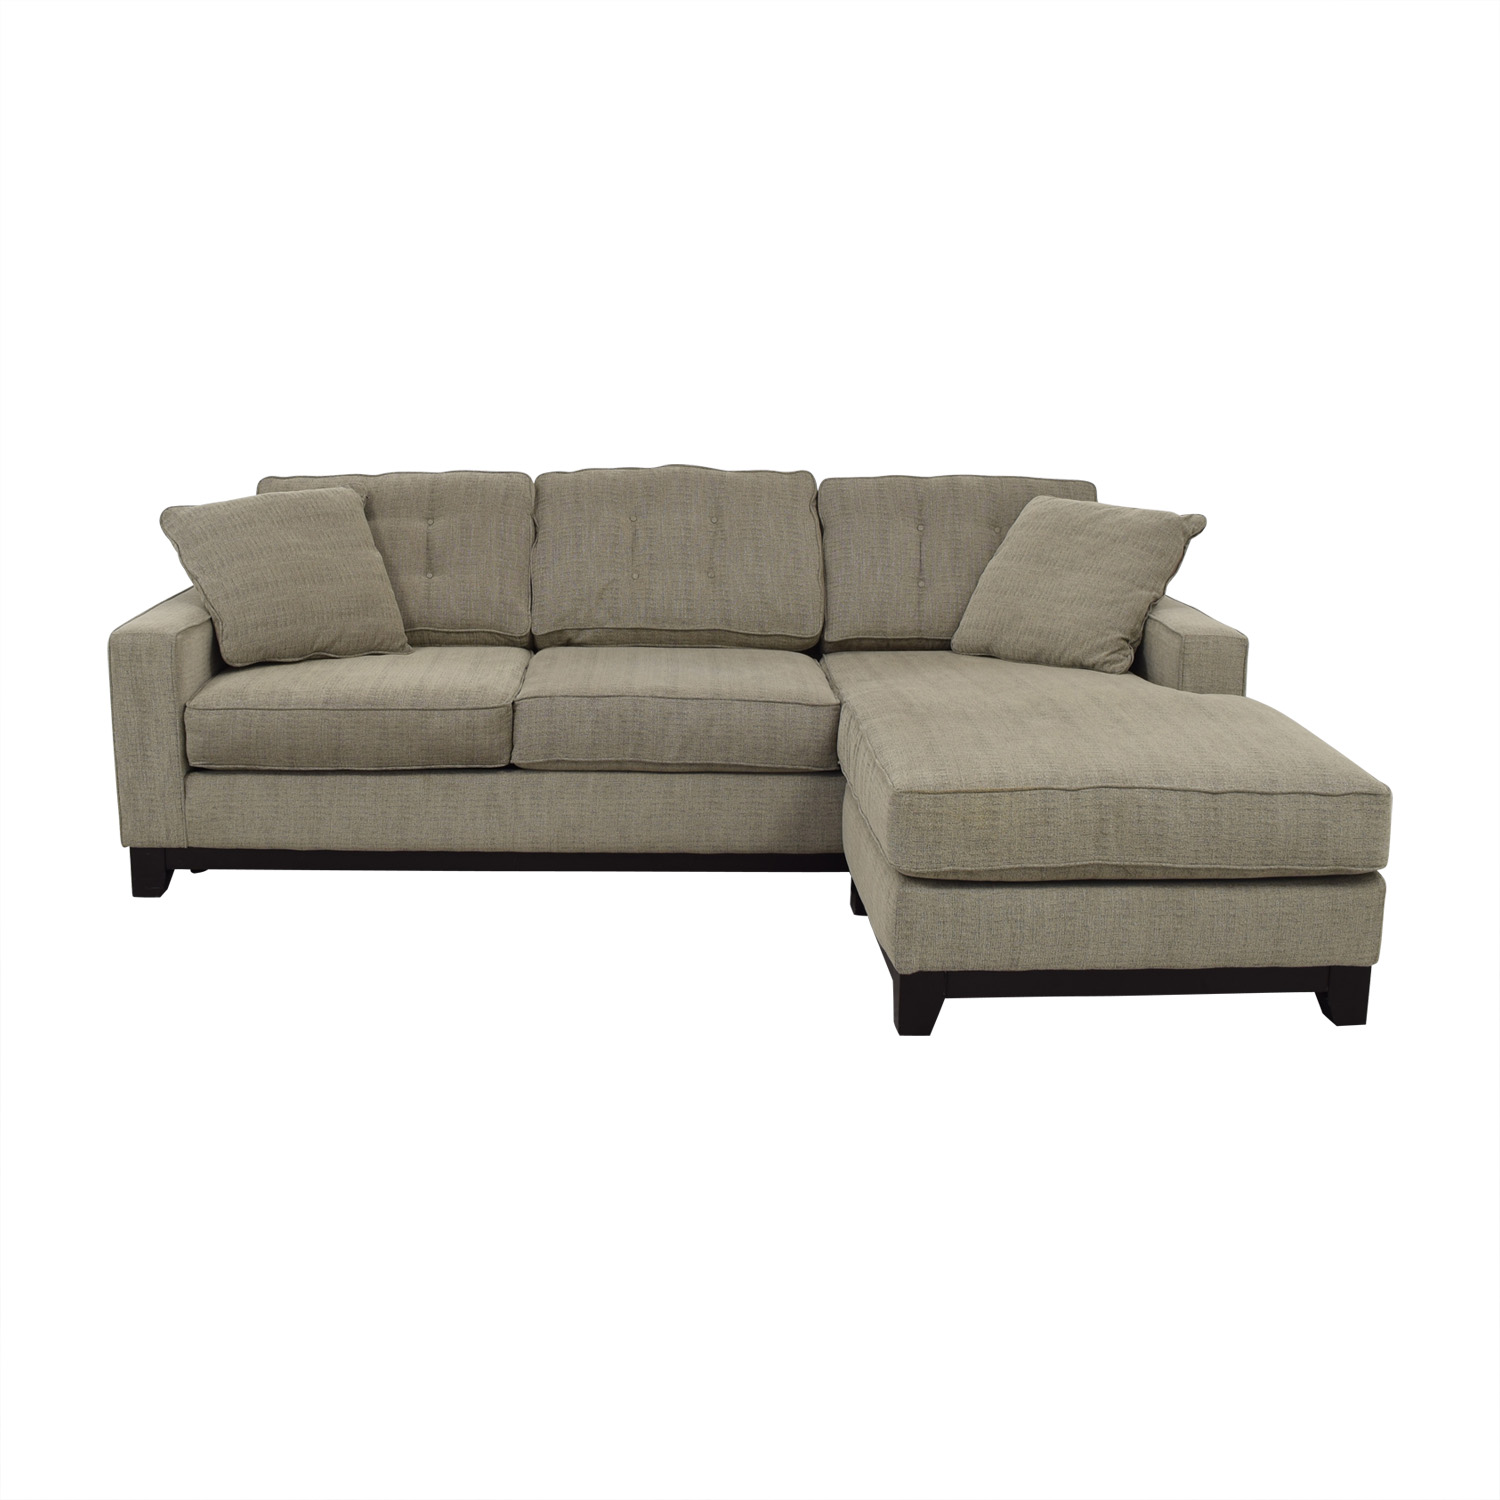 Macy's Macy's Gray Chaise Sectional on sale